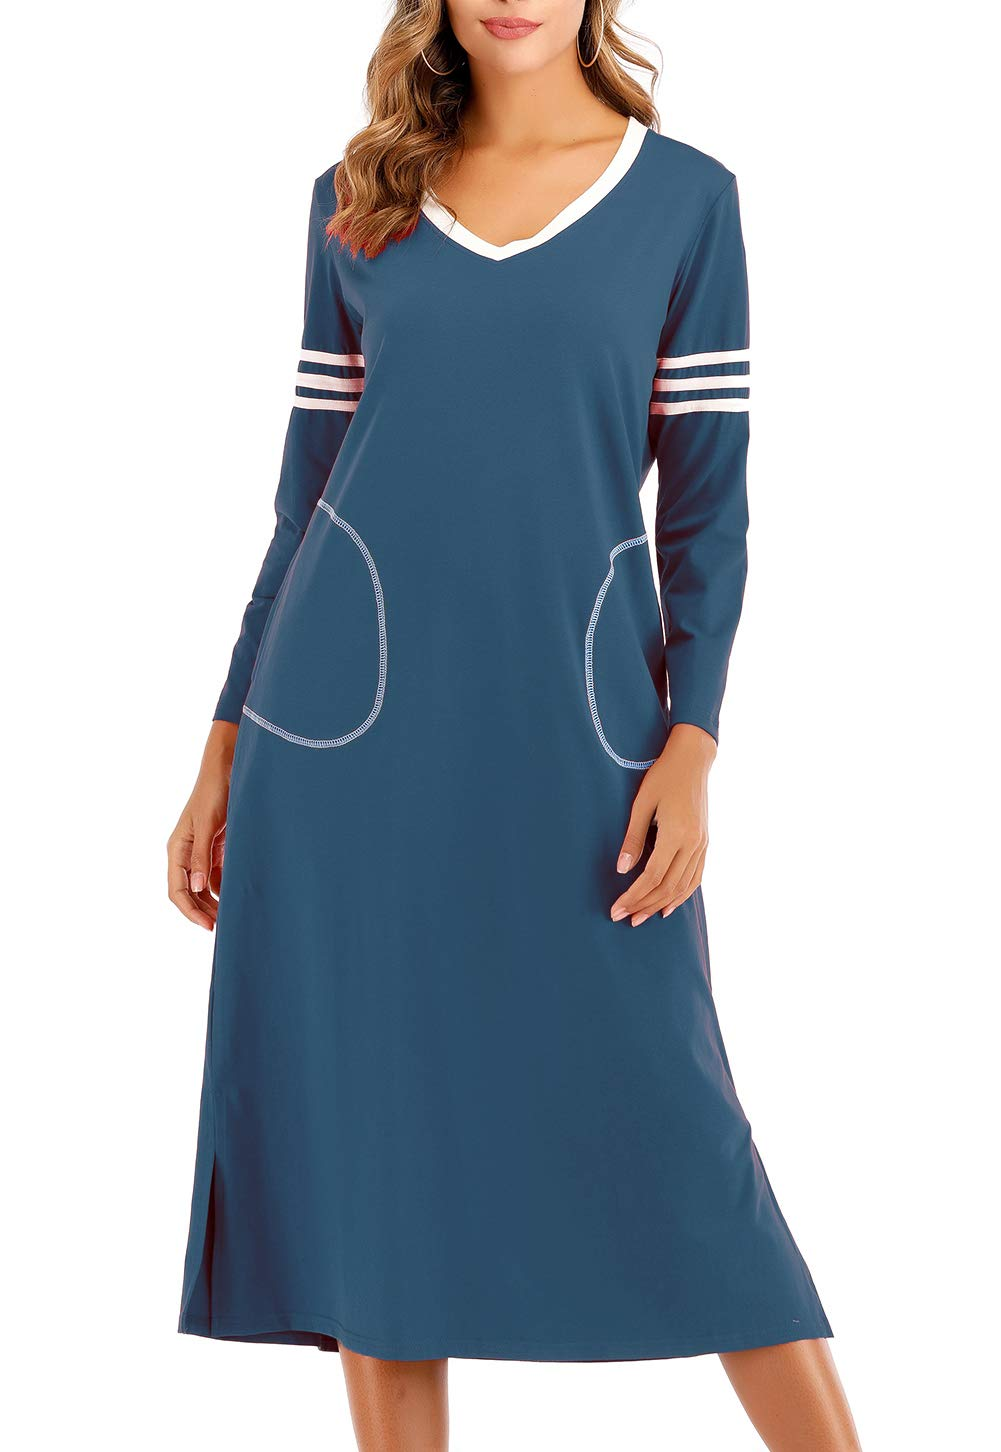 AOVXO Long Nightgown Womens V Neck Long Sleeve Nightshirt Ultra-Soft Cotton Fabric Split Hem Design with 2 Side Deep Pockets (Blue, M)